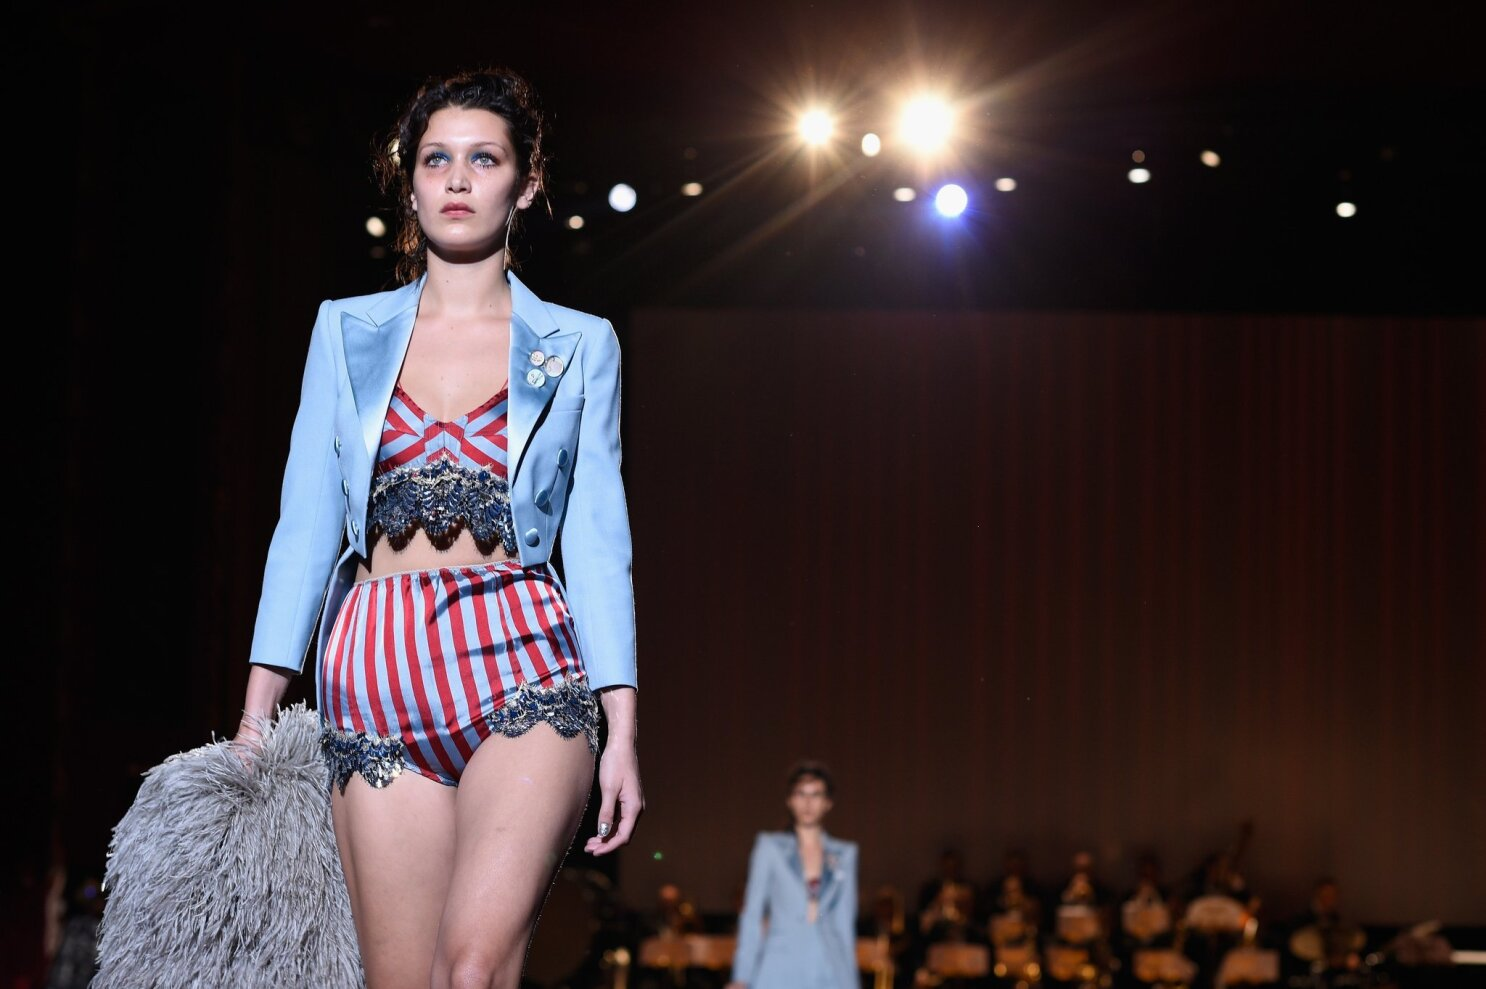 The Top 5 Trends From The New York Fashion Week Runways Los Angeles Times